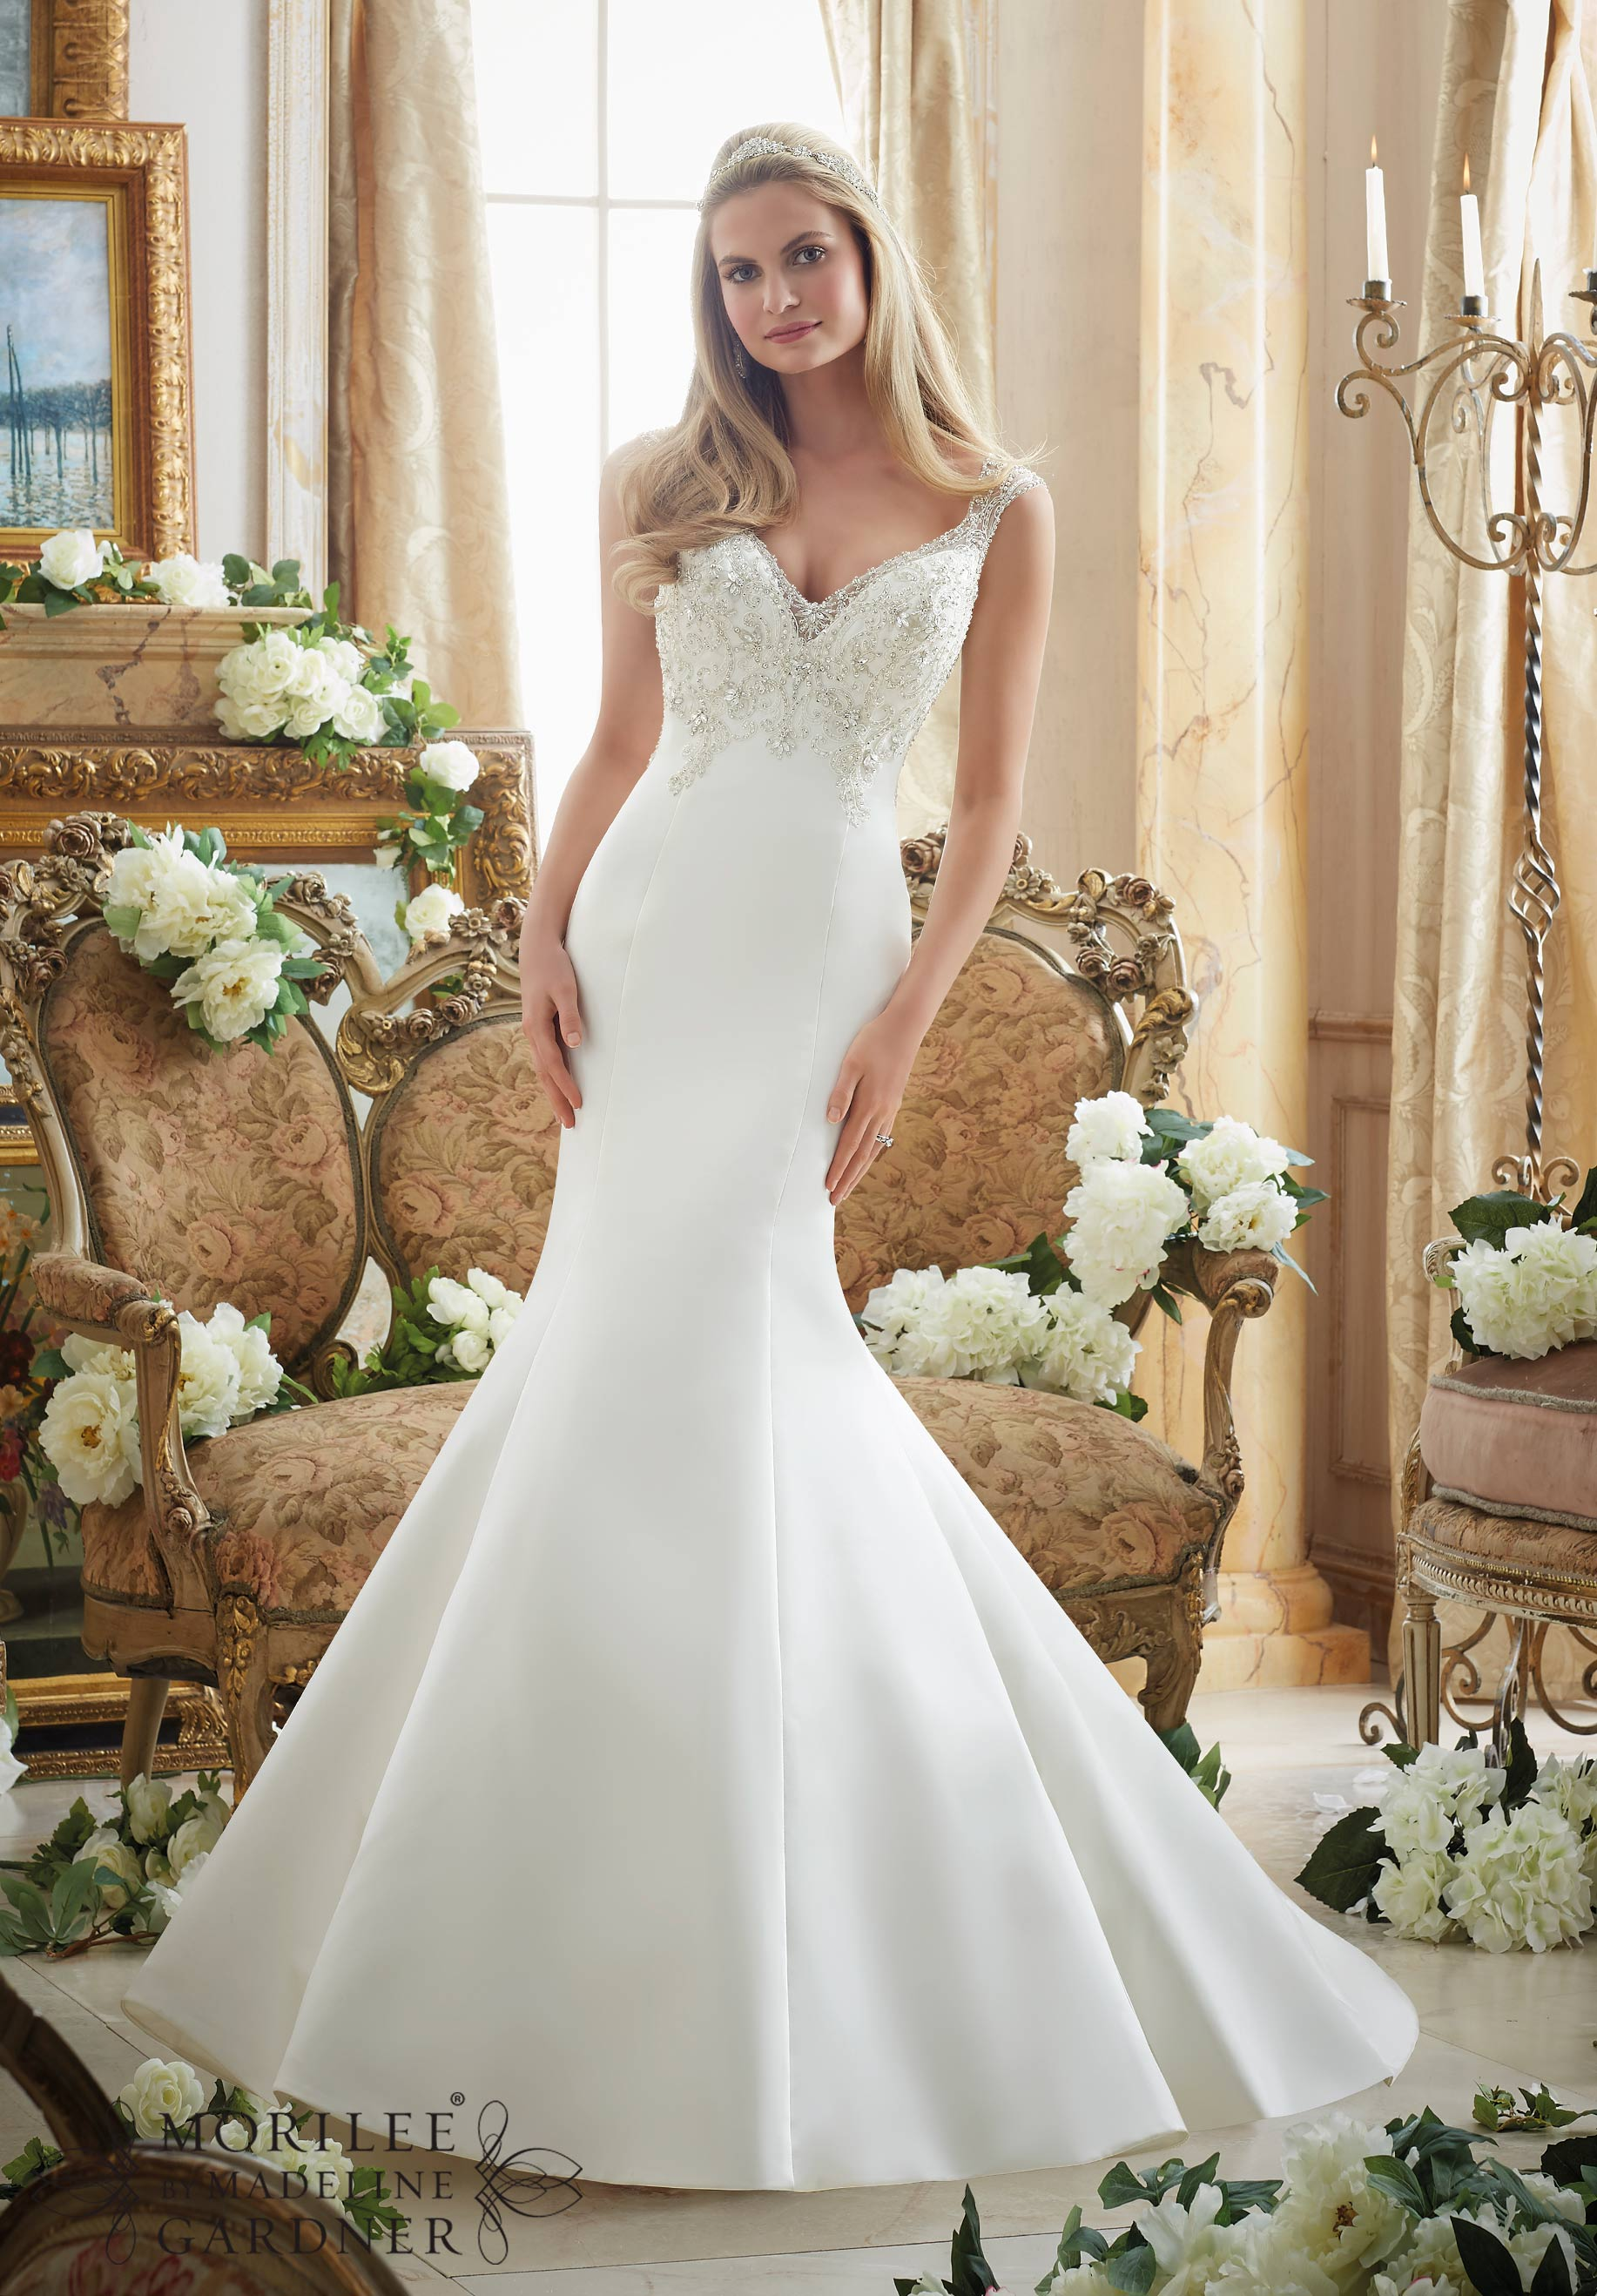 How To Choose The Right Wedding Dress Style For Your Body Shape